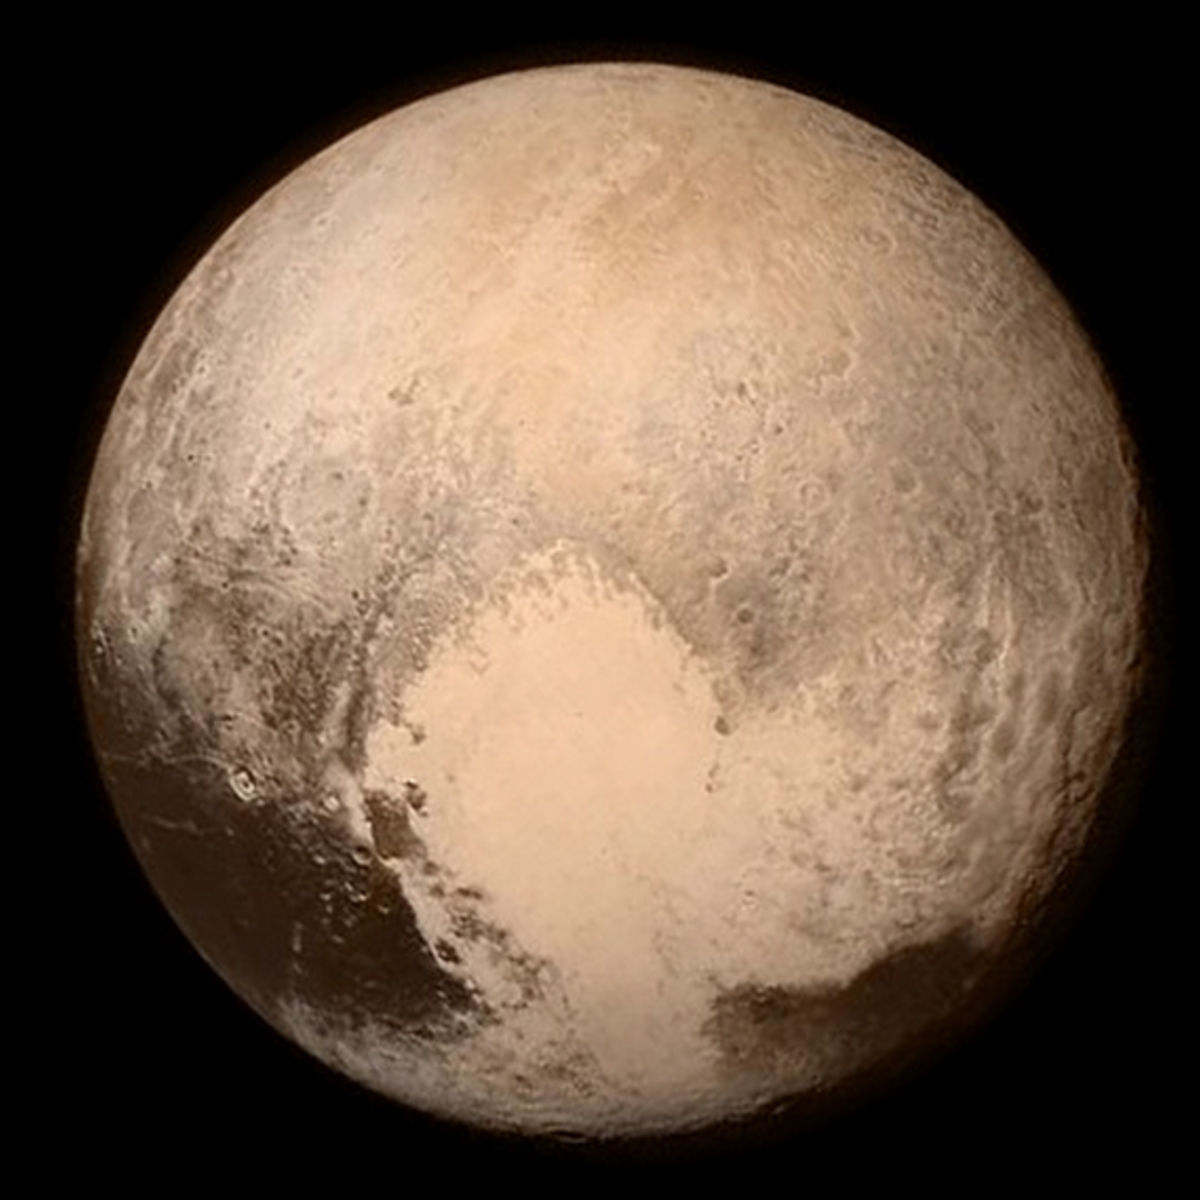 pluto_color_beforeclosestapproach.jpg